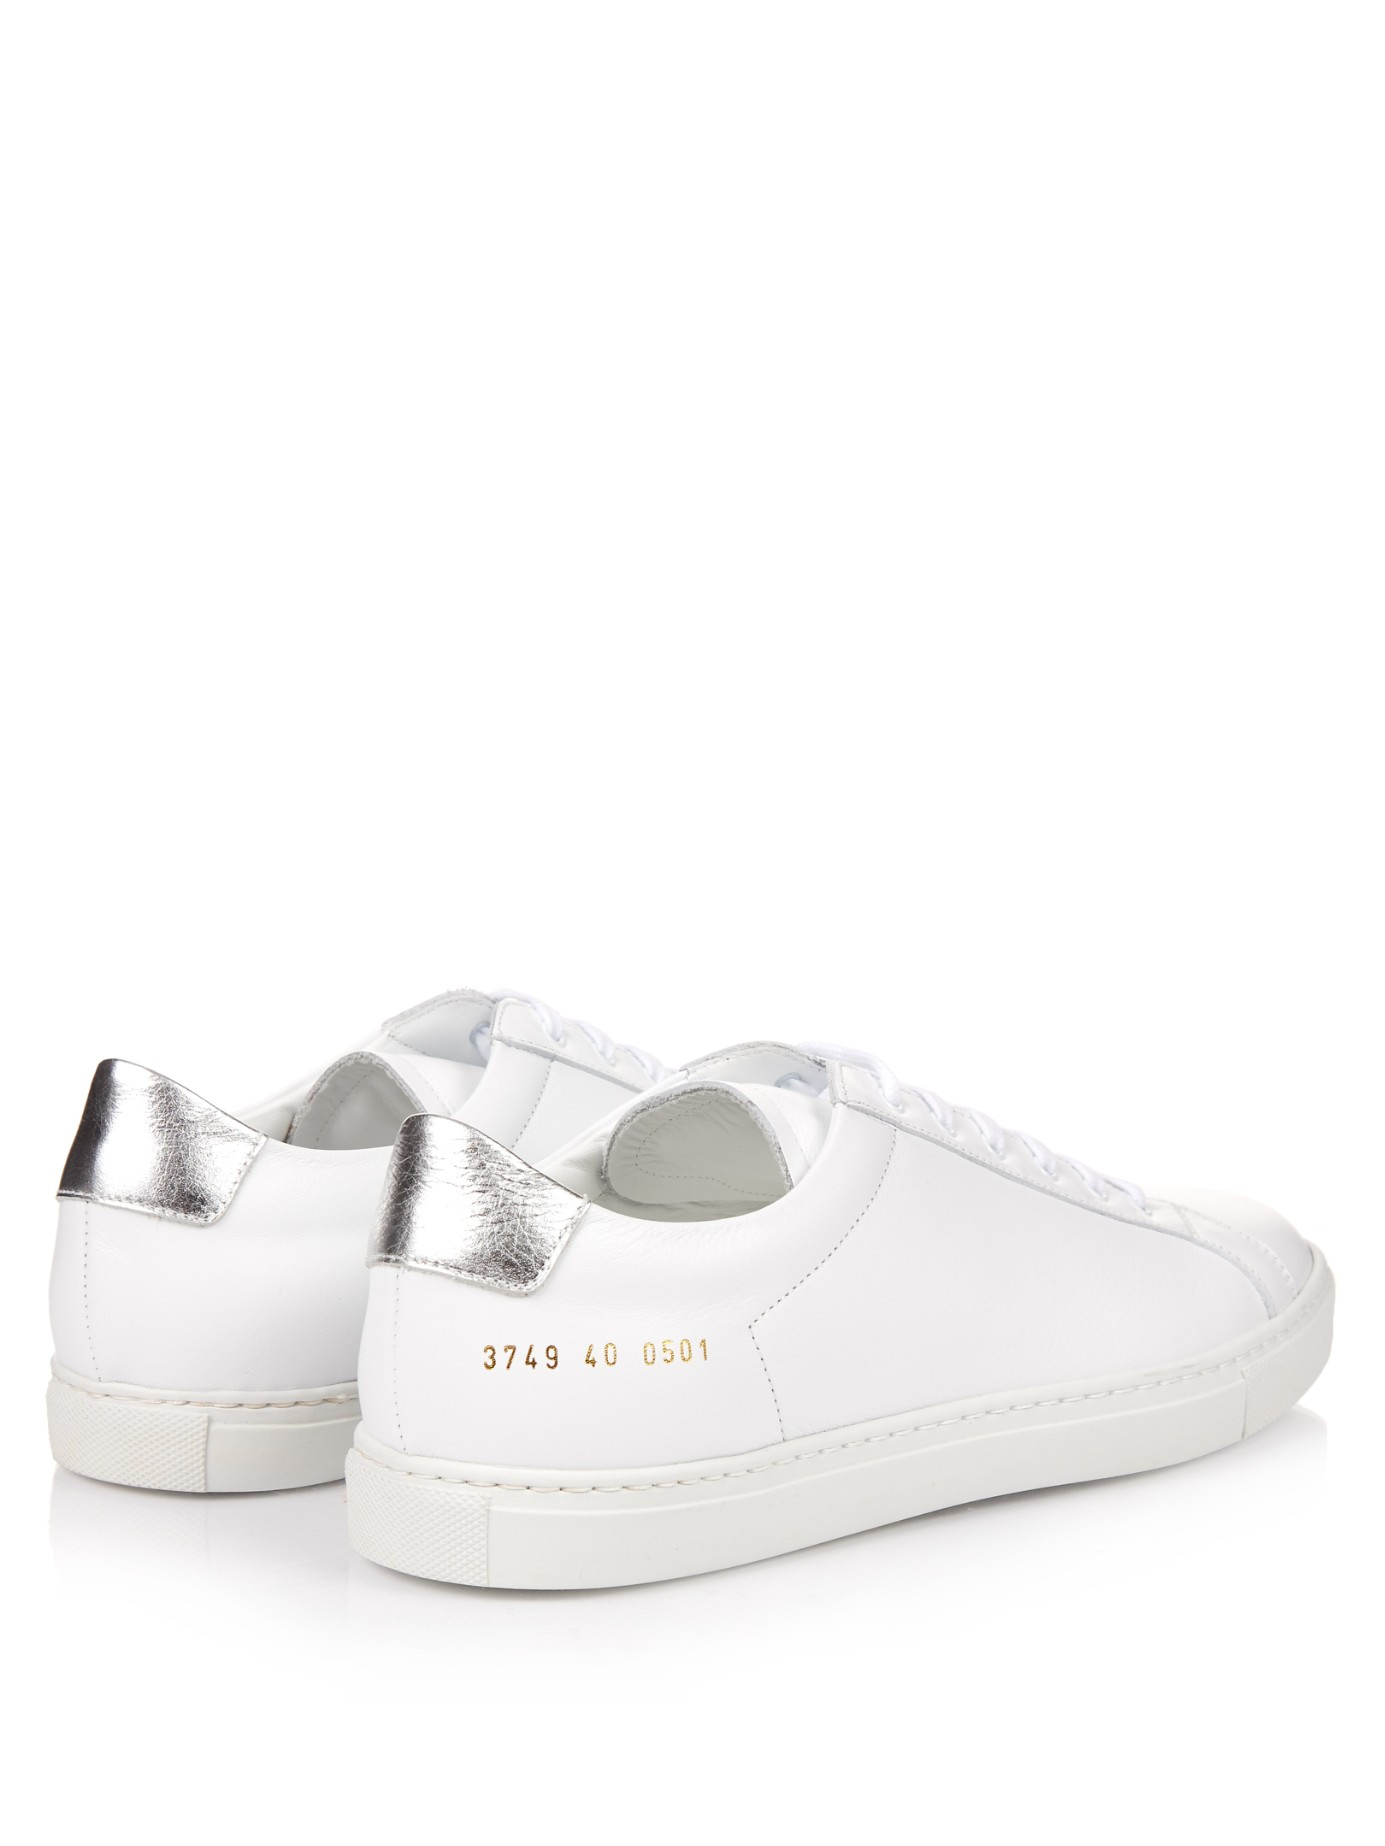 d70ba2b04d03f Common Projects Achilles Retro Leather Low-top Trainers in White - Lyst